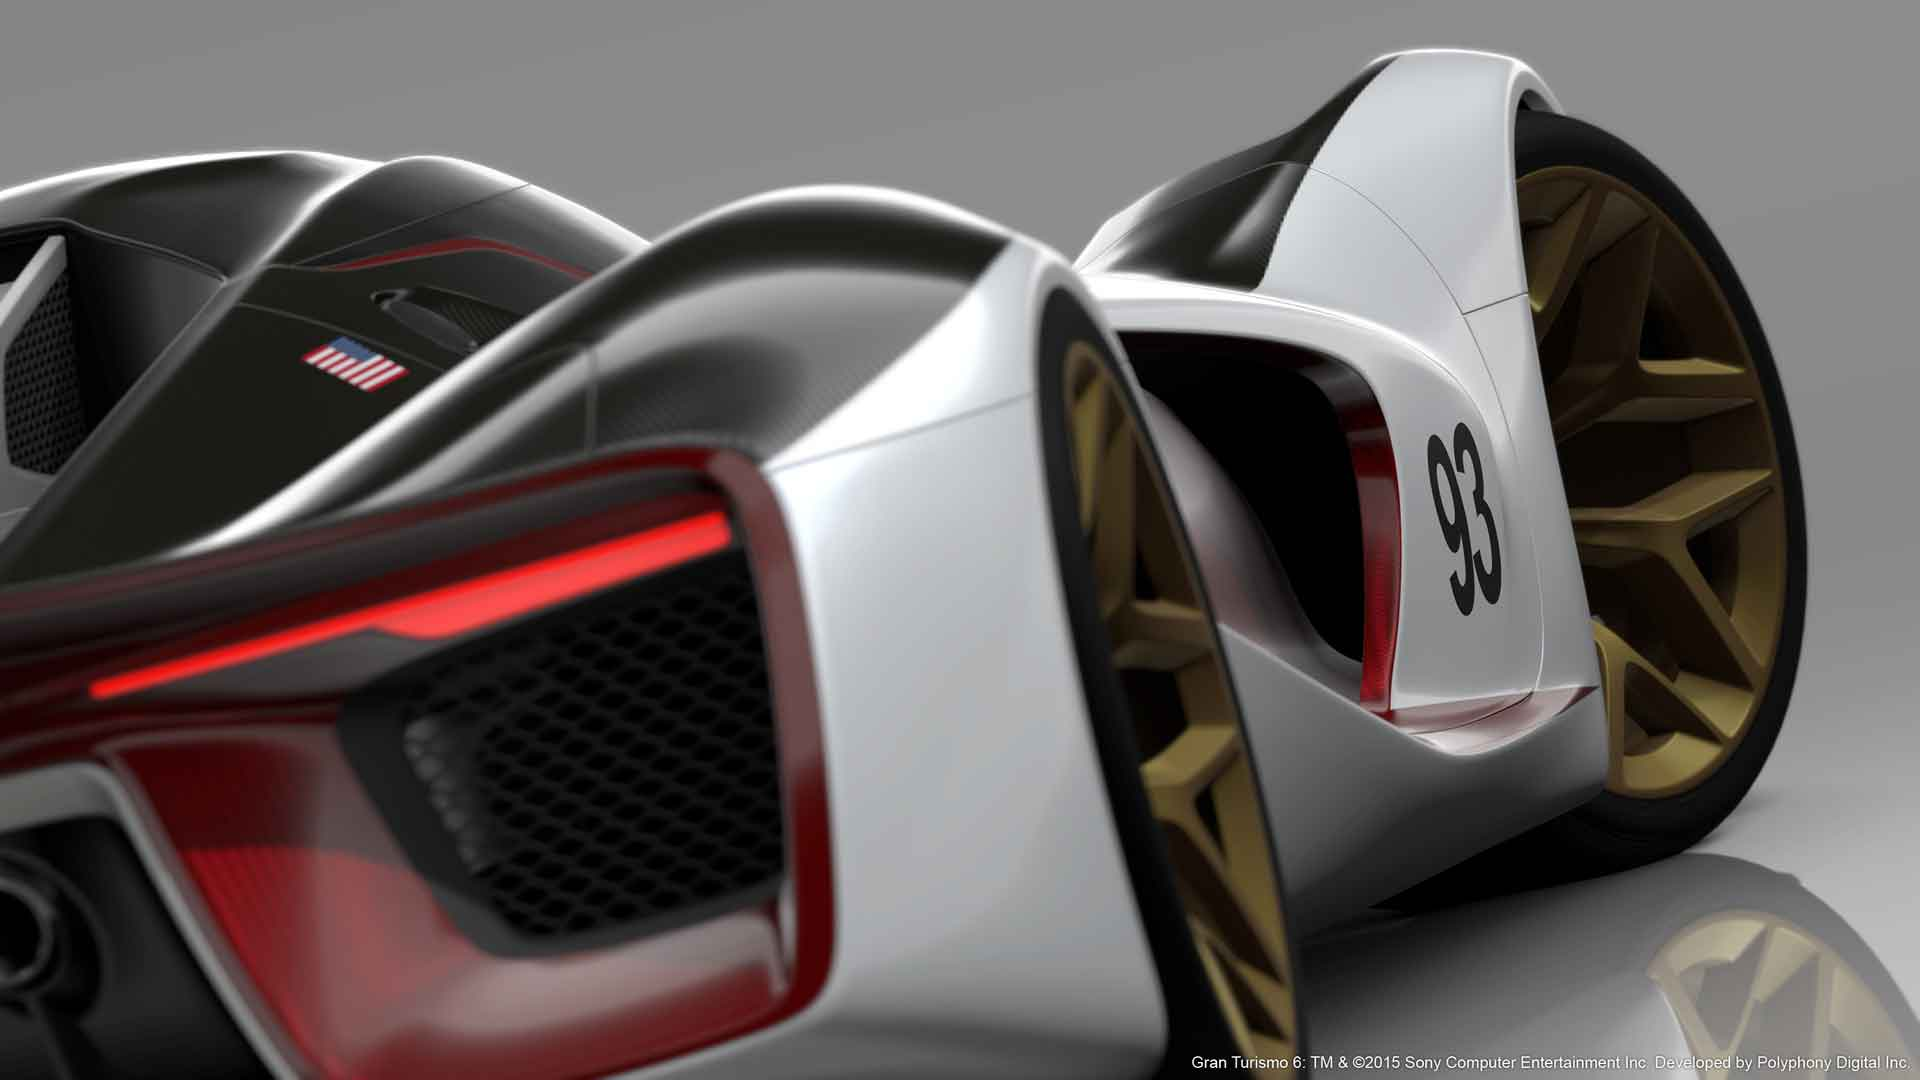 SRT Tomahawk Supercar for Gran Turismo 6